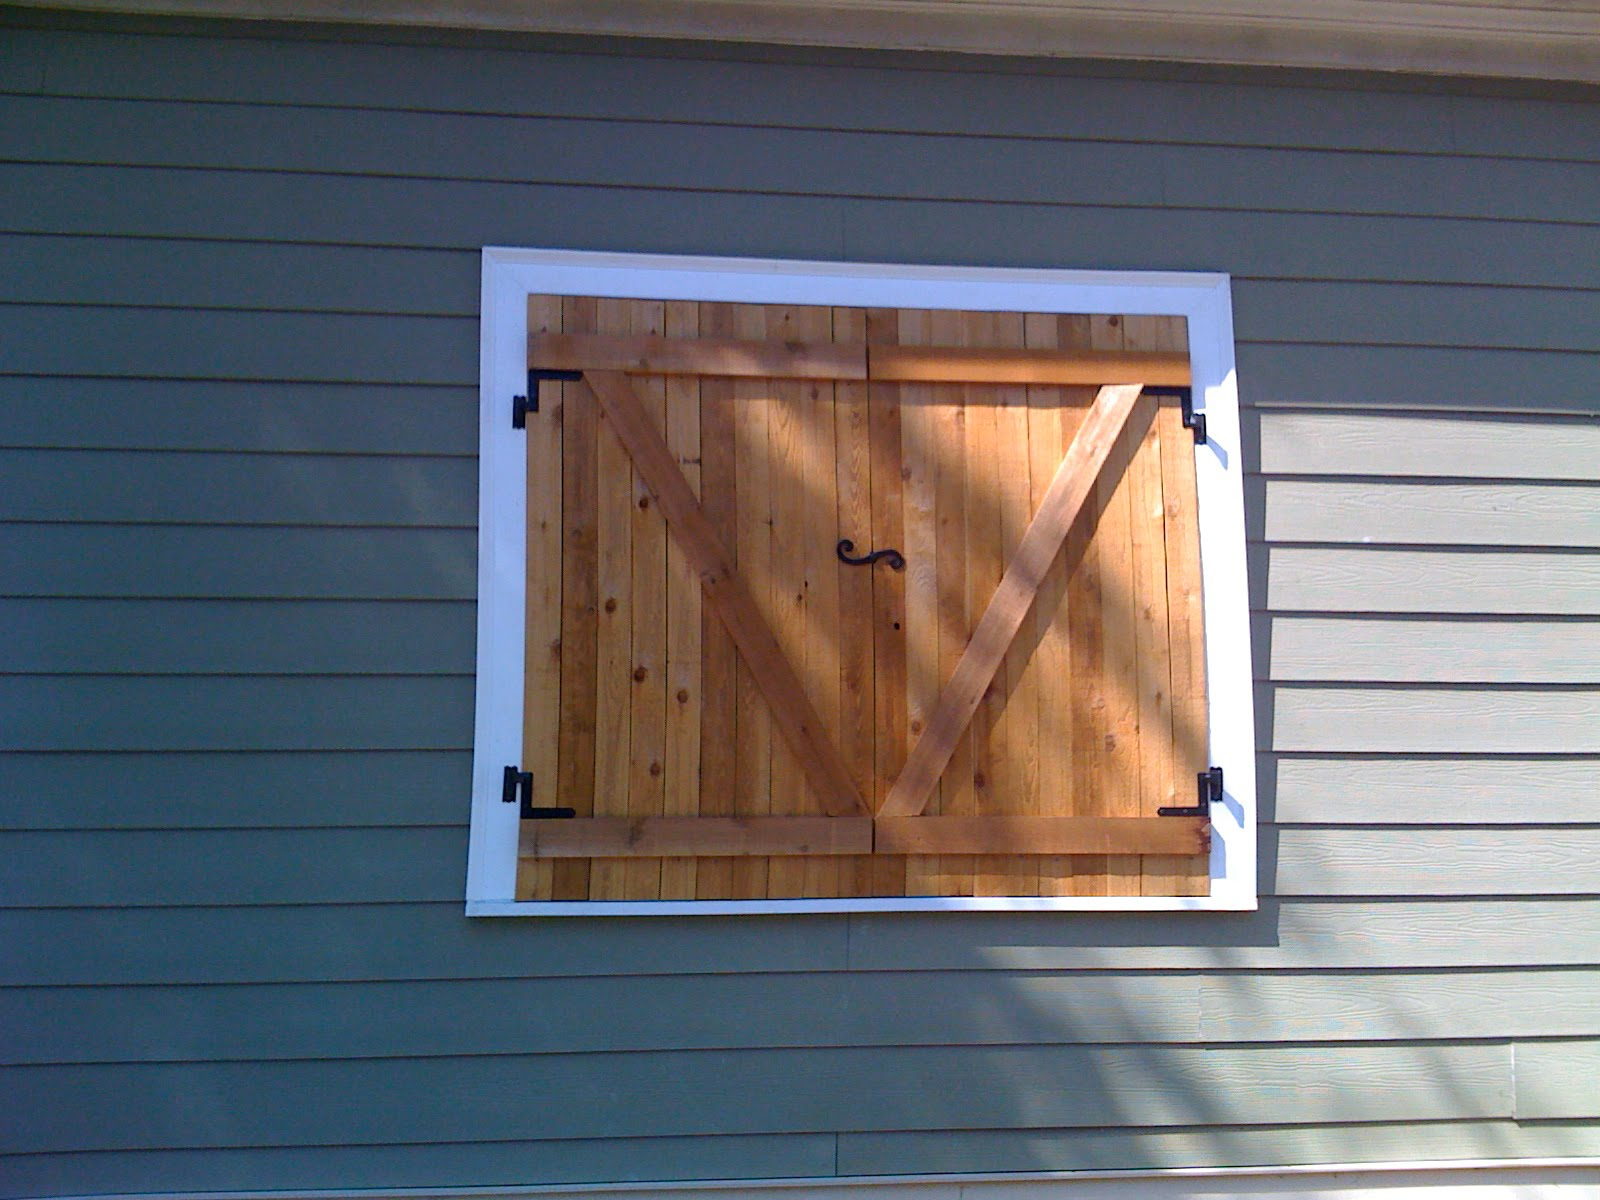 Project 181 Shutters For Security And Air Funneling